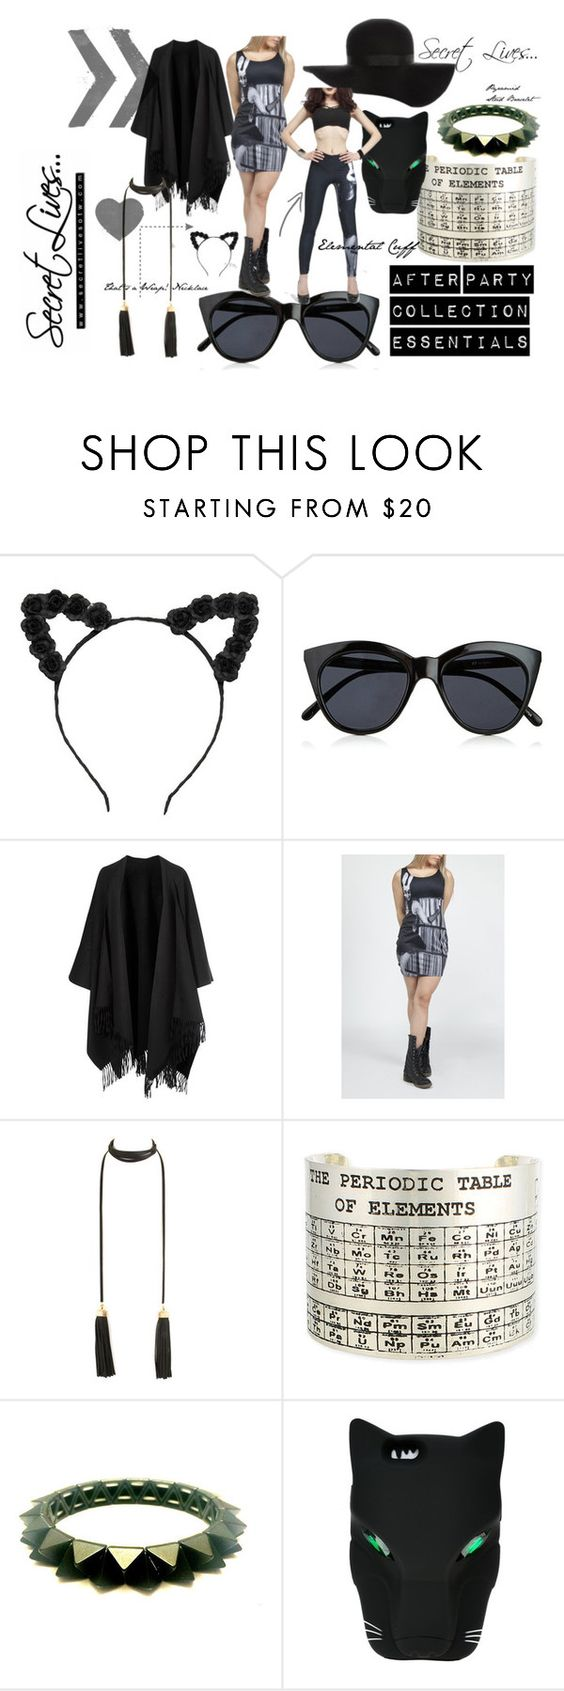 """""""After Party Collection"""" by secretlivesotw ❤ liked on Polyvore featuring Le Specs, Acne Studios, Topshop and STELLA McCARTNEY"""